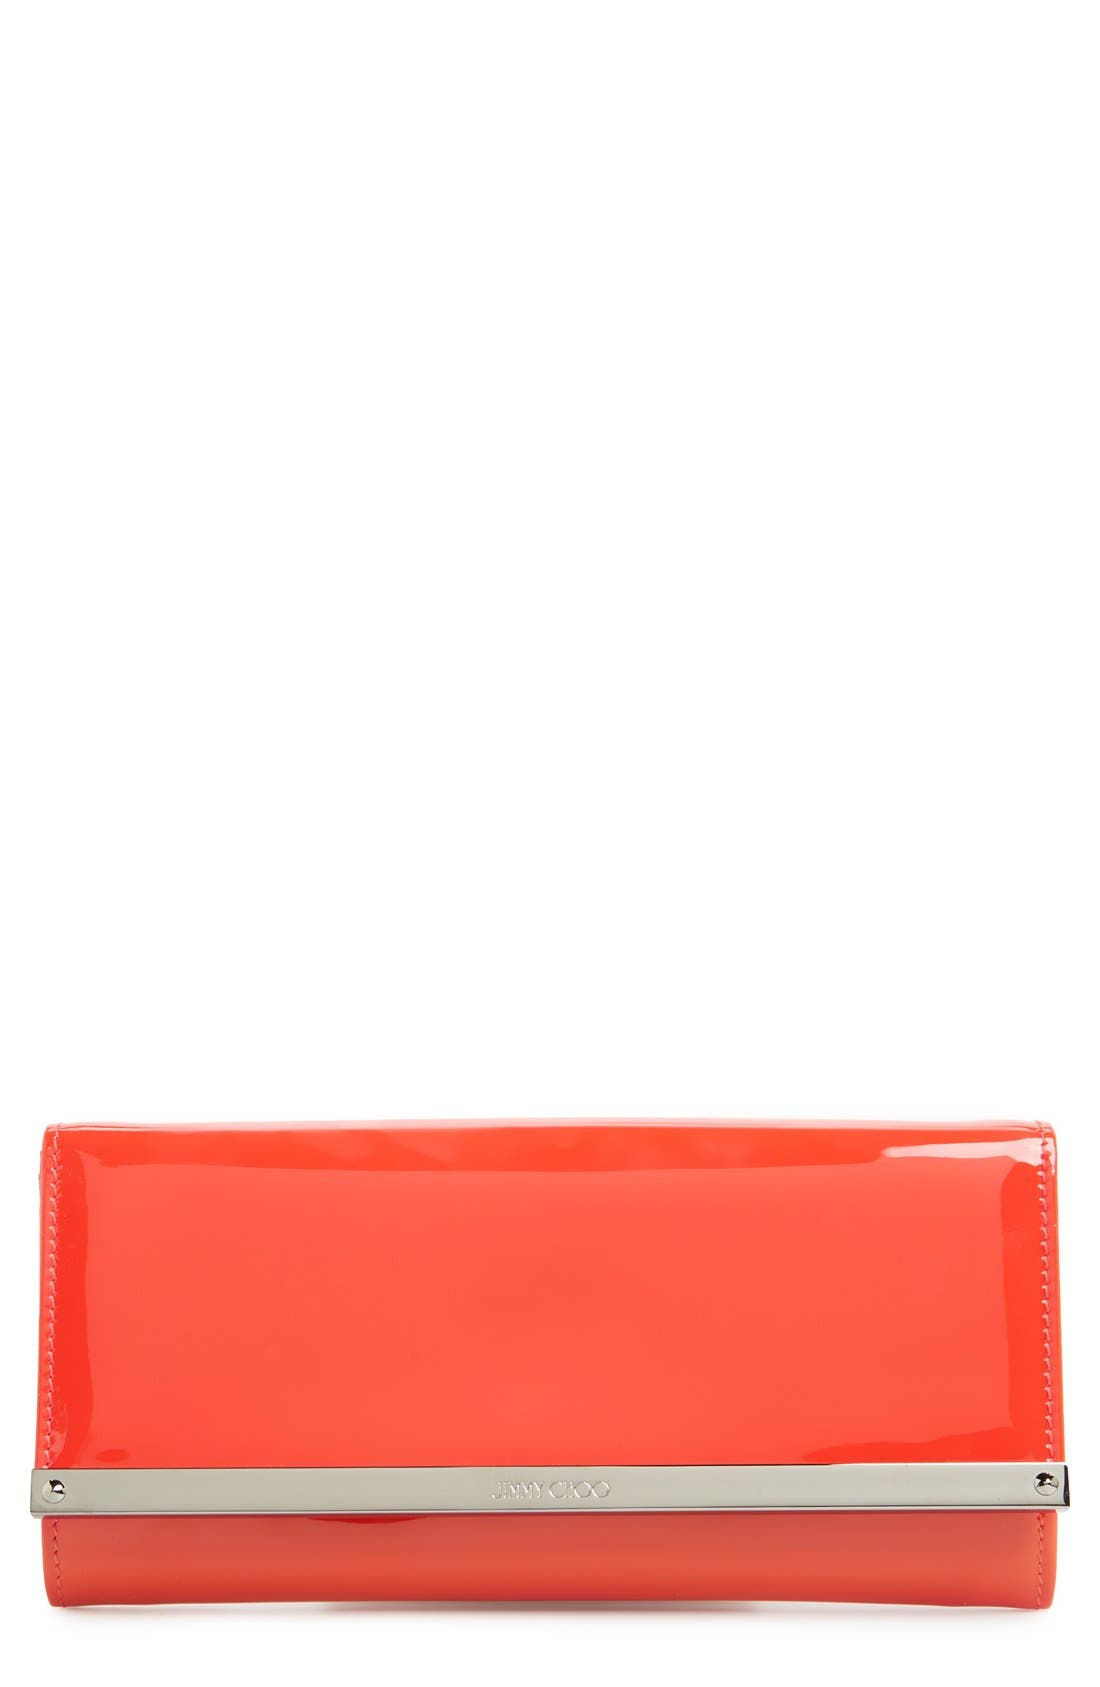 Main Image - Jimmy Choo 'Milla' Patent Leather Wallet on a Chain